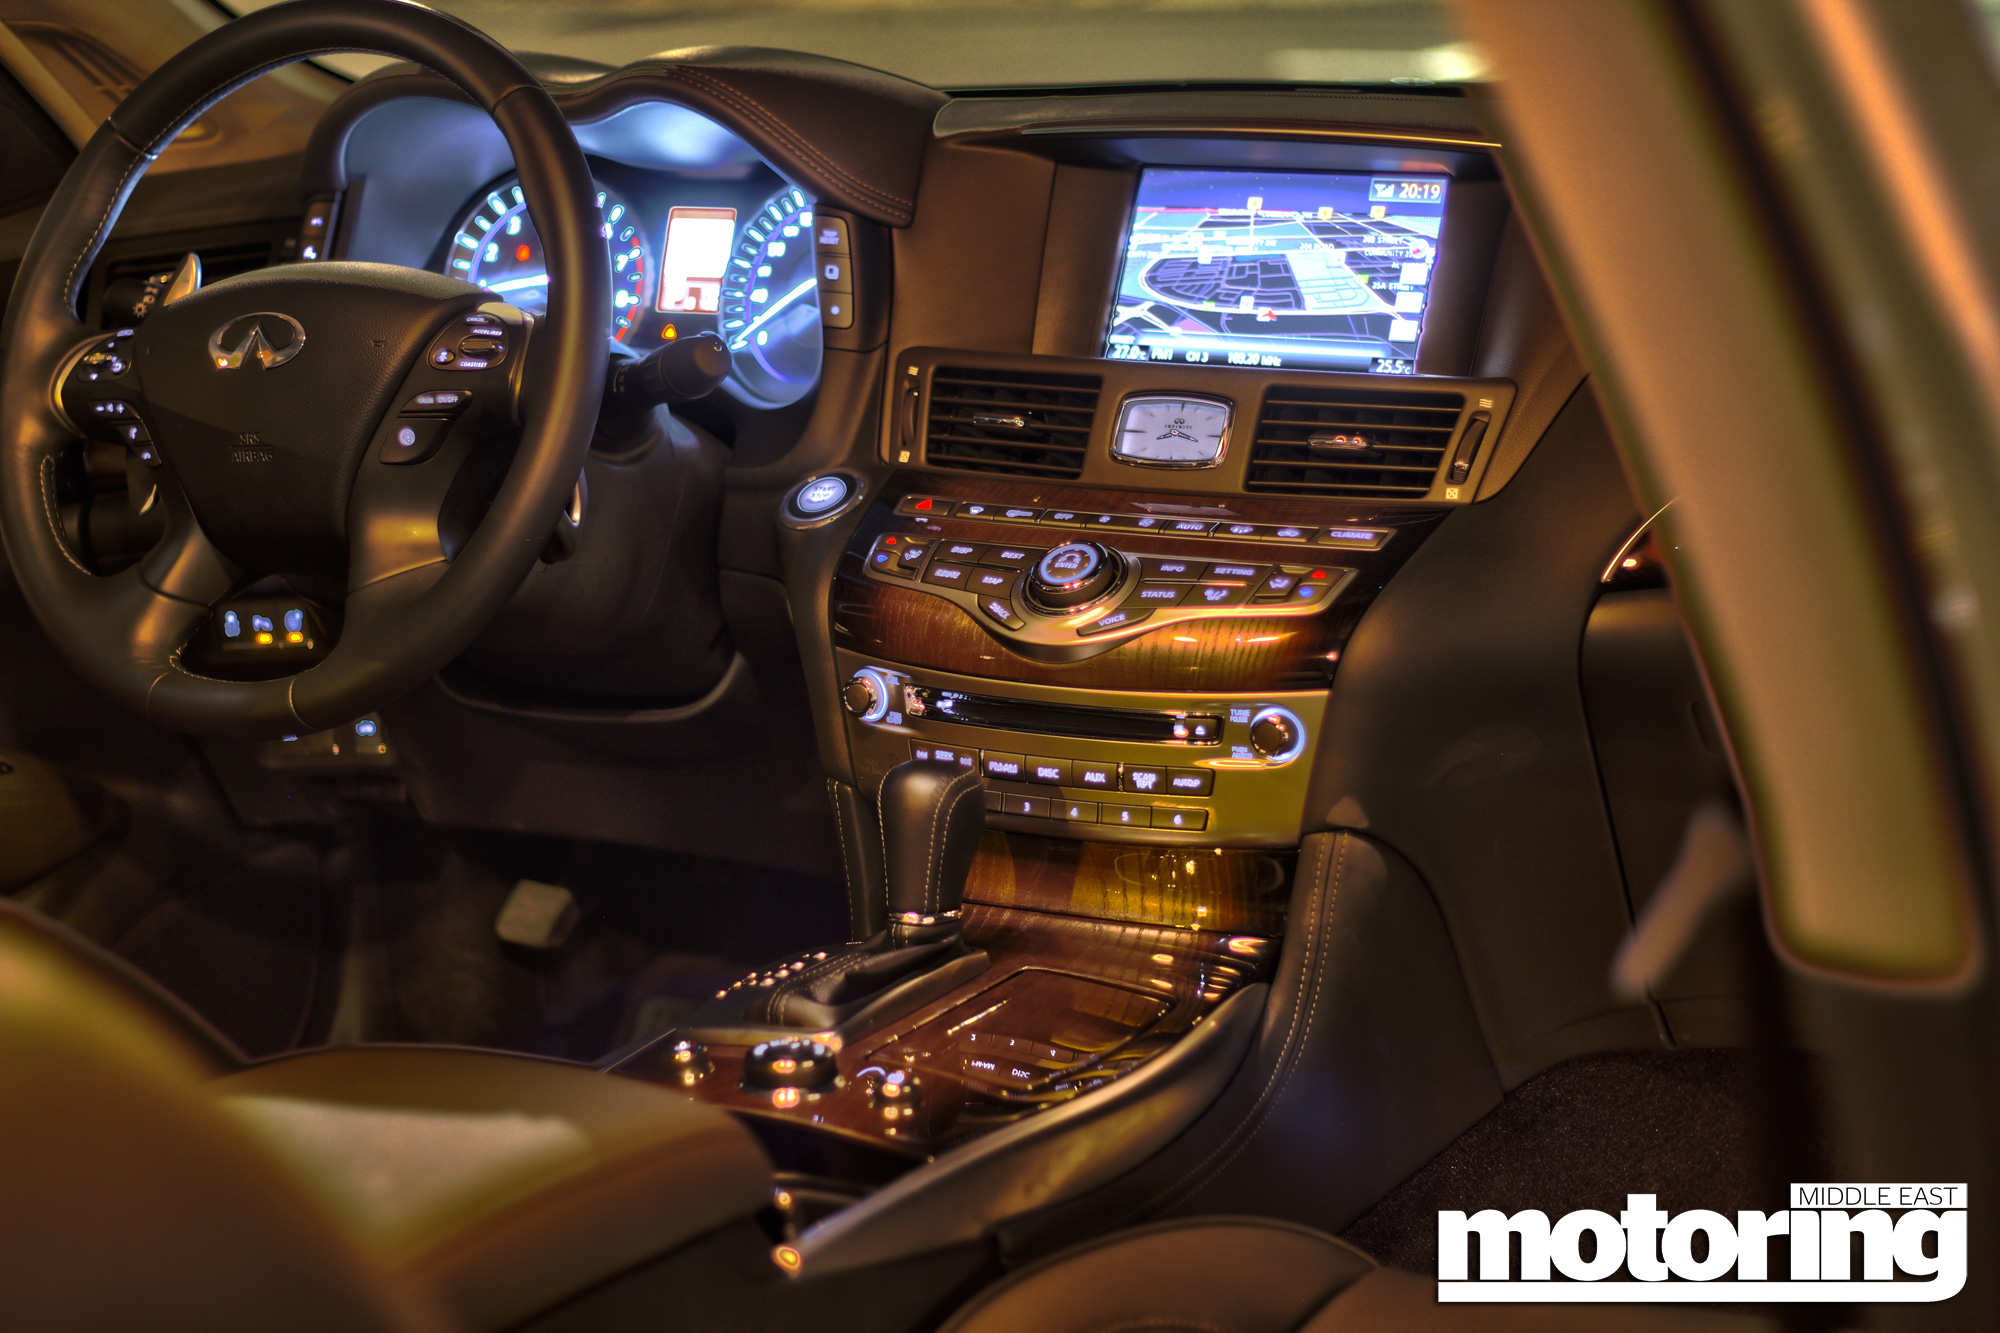 Infiniti m56 review motoring middle east car news reviews and infiniti m56 s vanachro Gallery